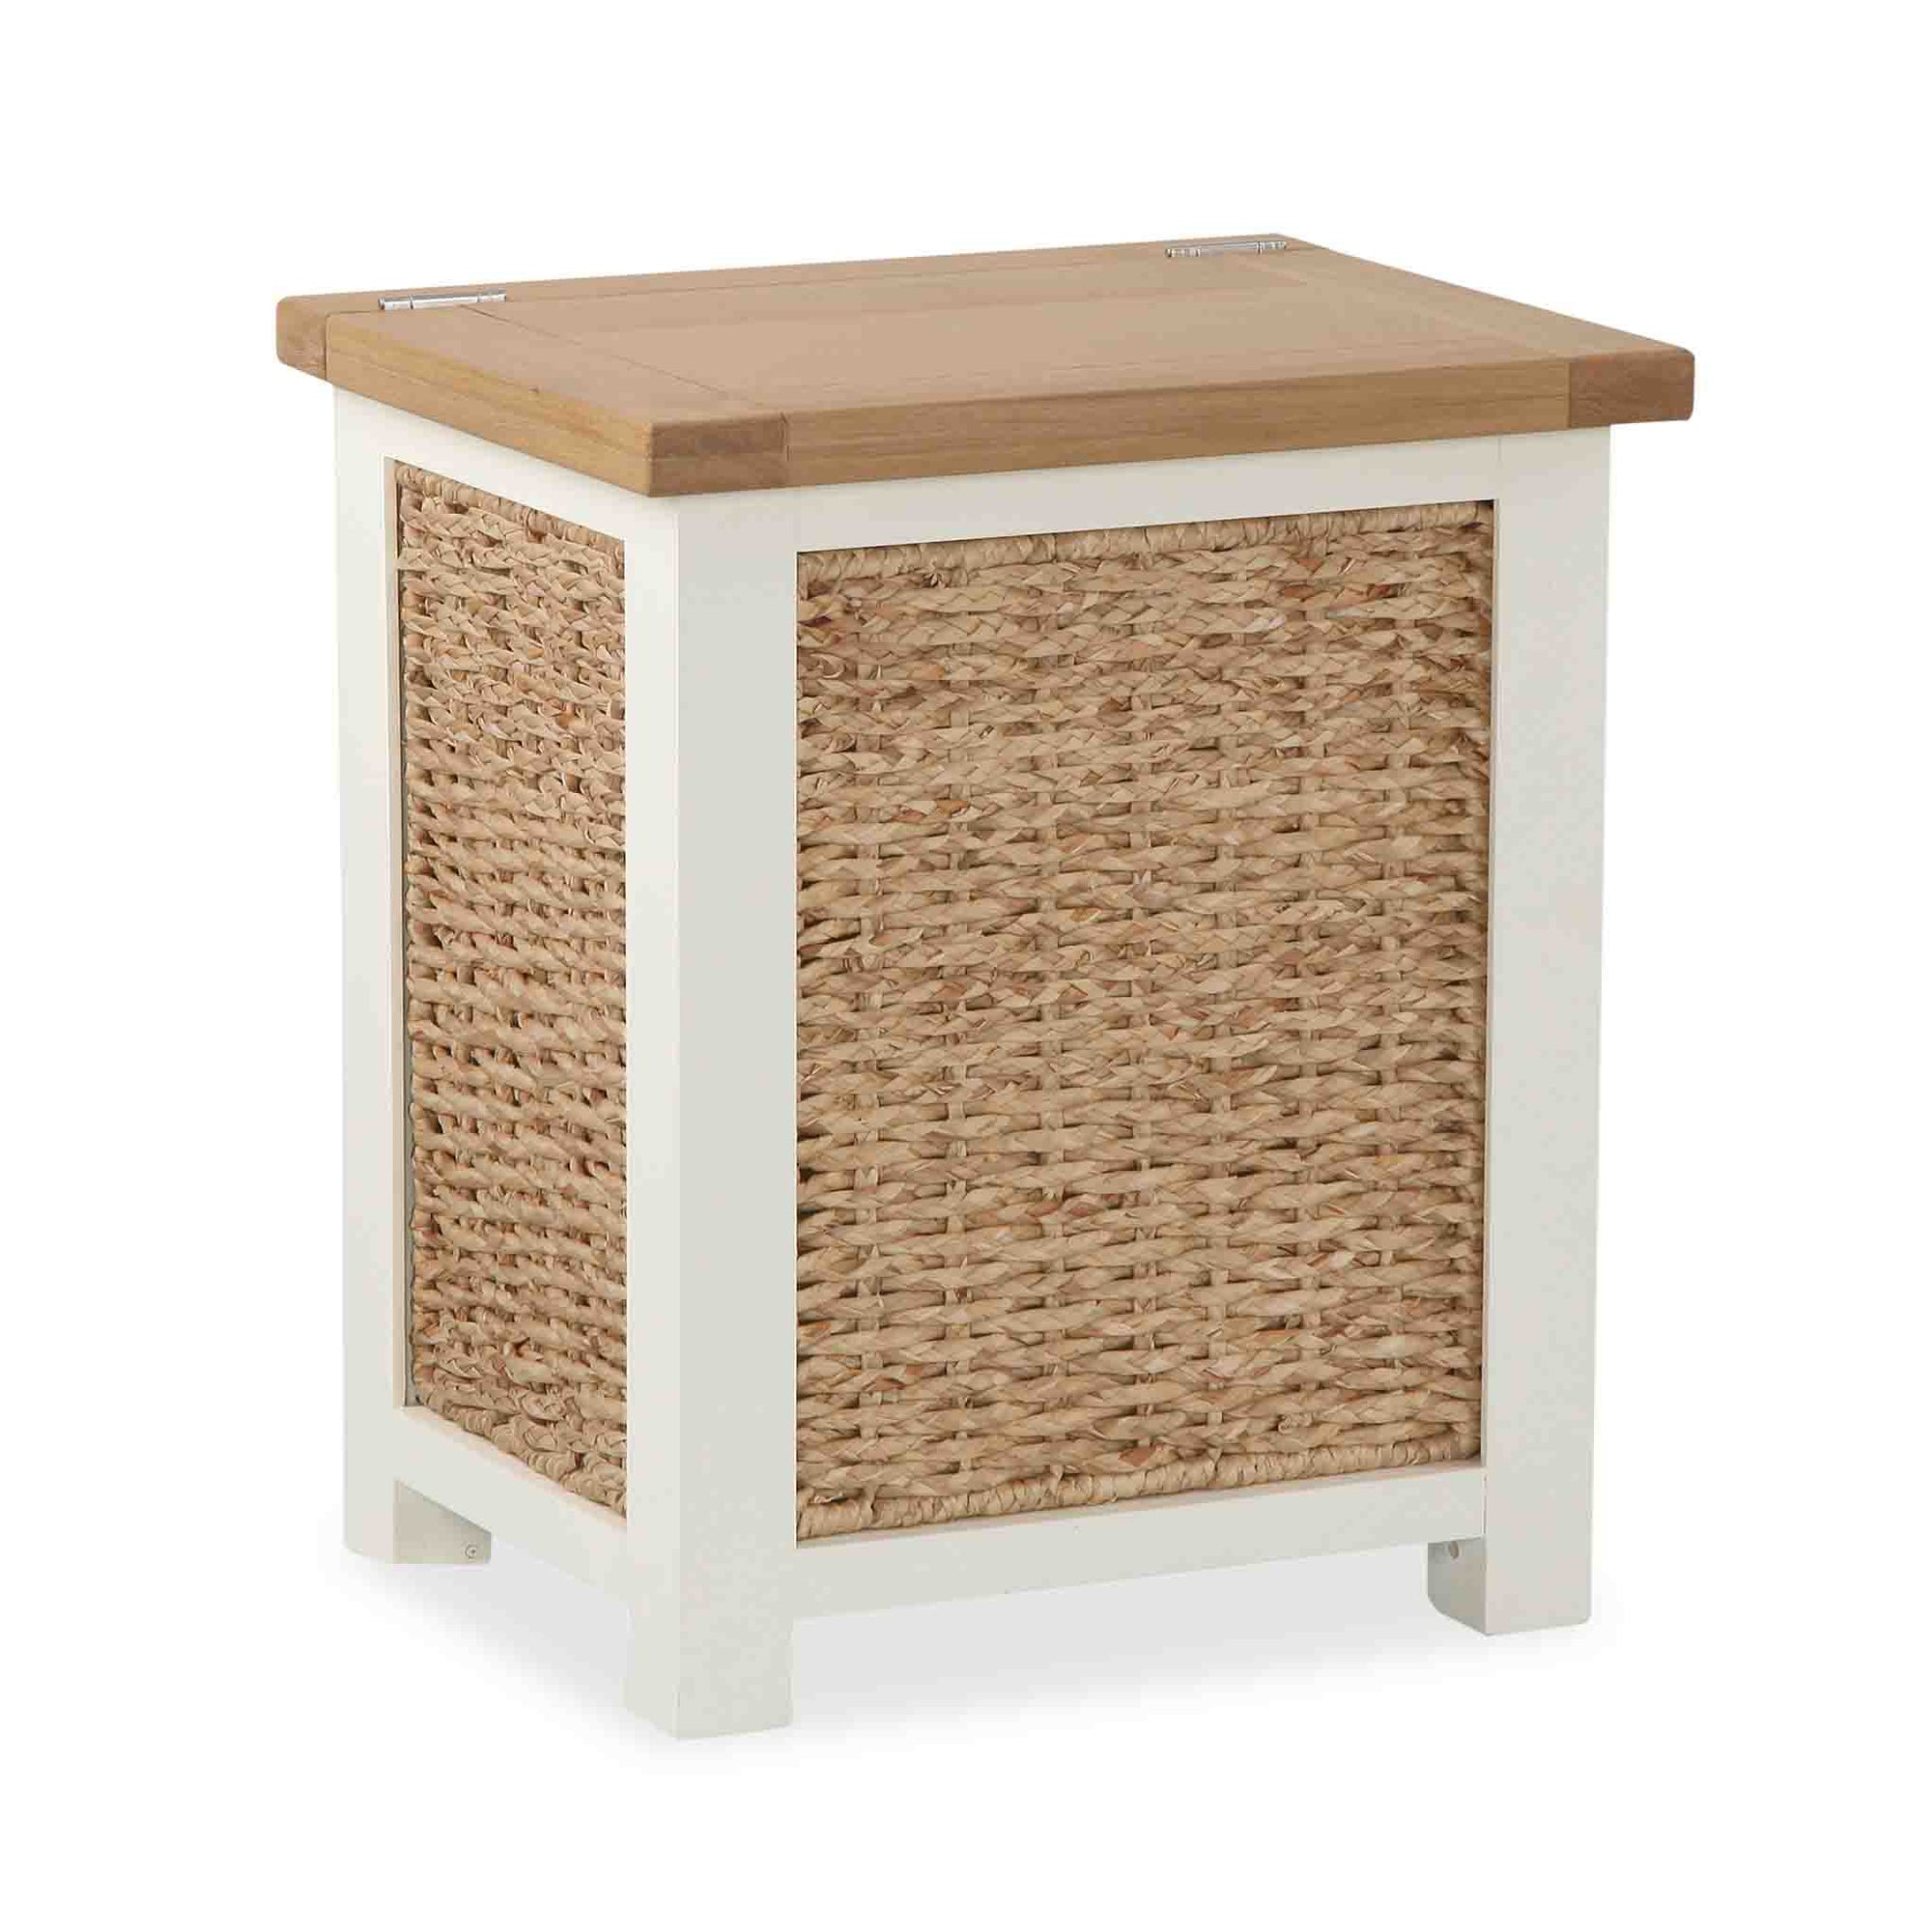 The Daymer Cream Wooden Laundry Basket with Lid from Roseland Furniture